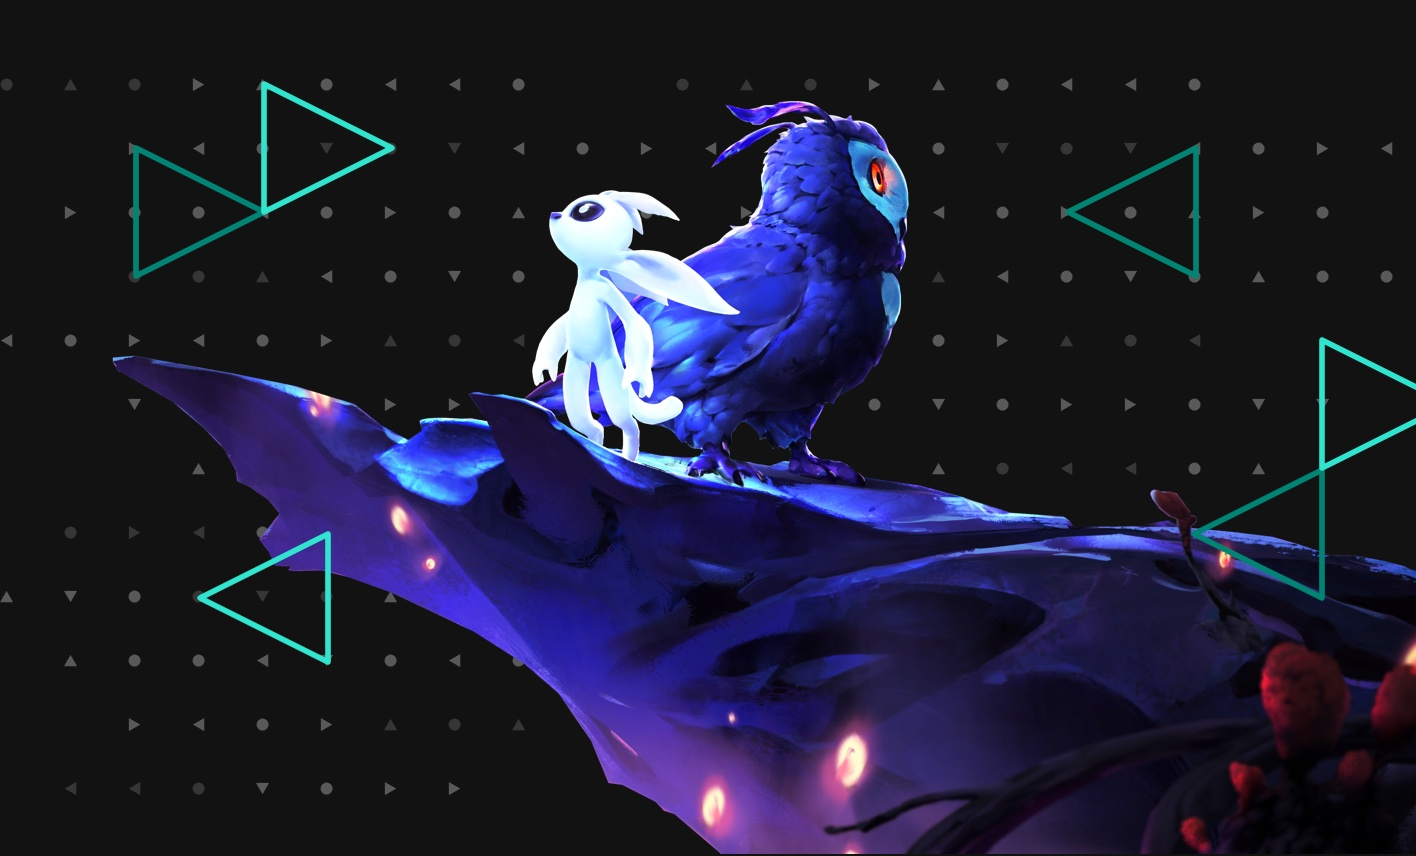 Ori and the Will of the Wisps game art